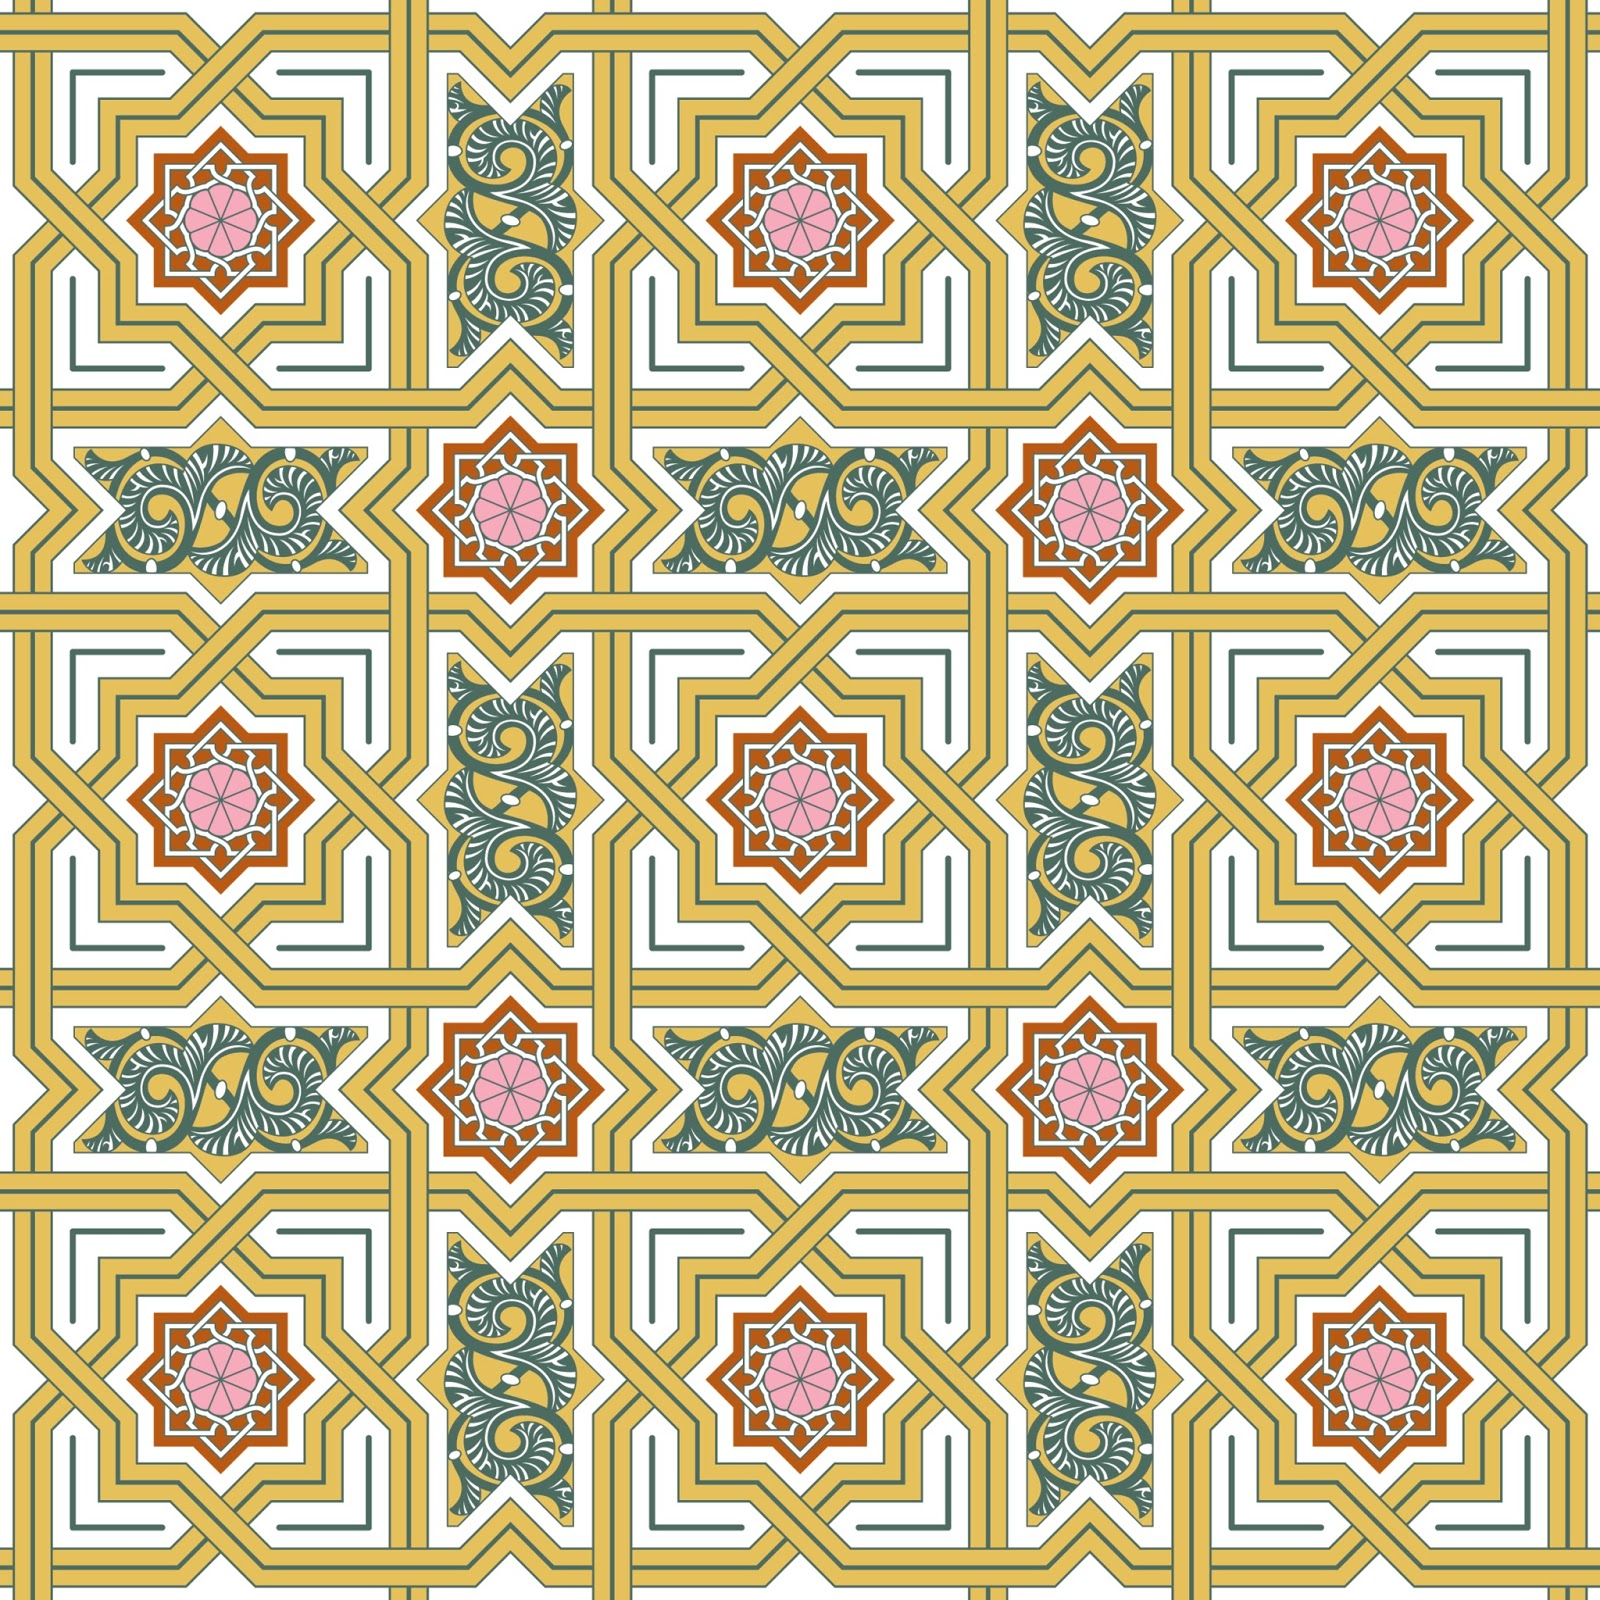 Art Design Patterns : Psychedelic patterns islamic style